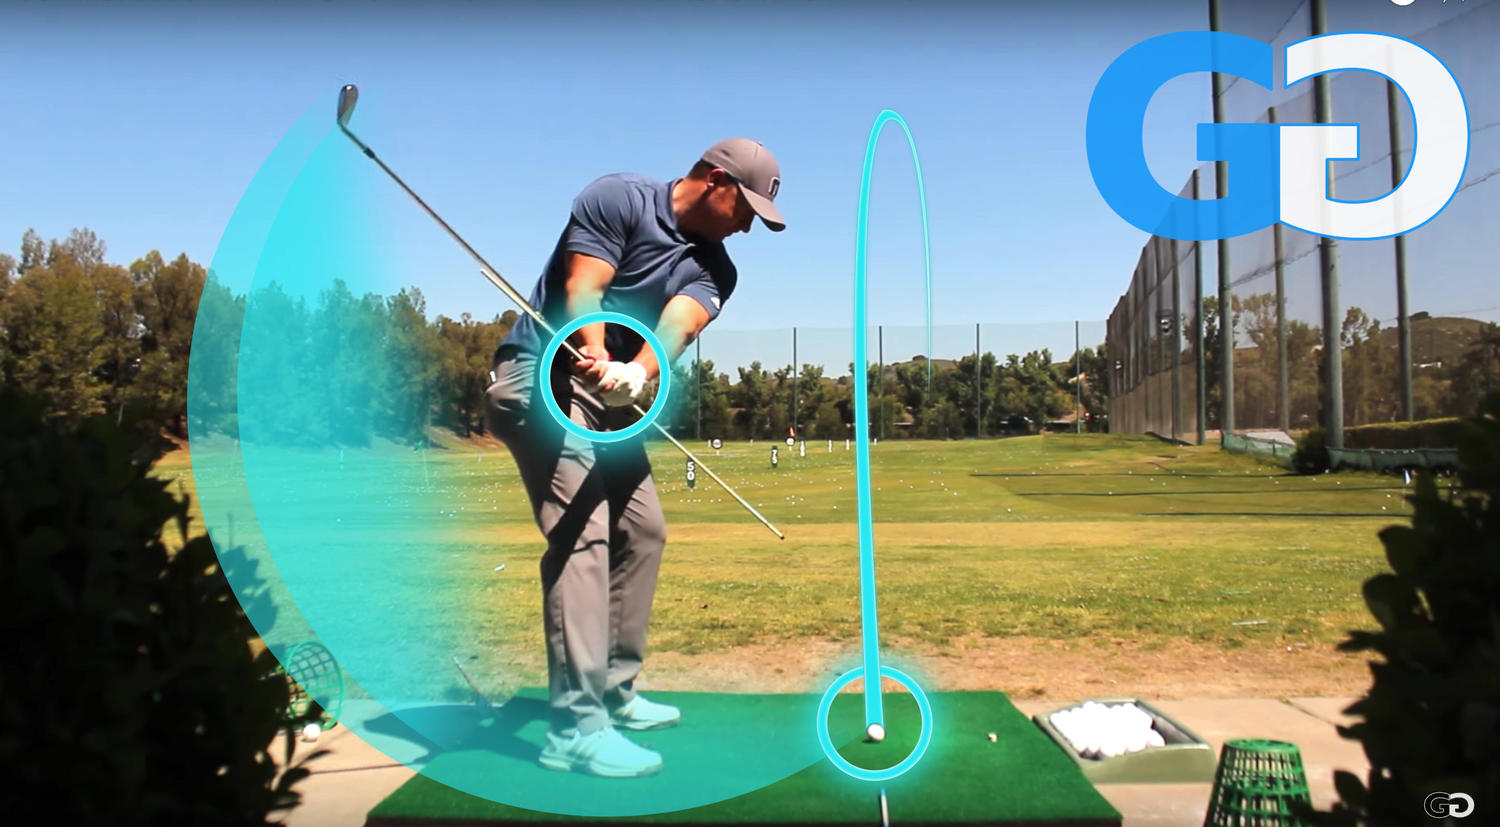 Super Speed and Mega Distance | Online Golf Lessons | GG SwingTips